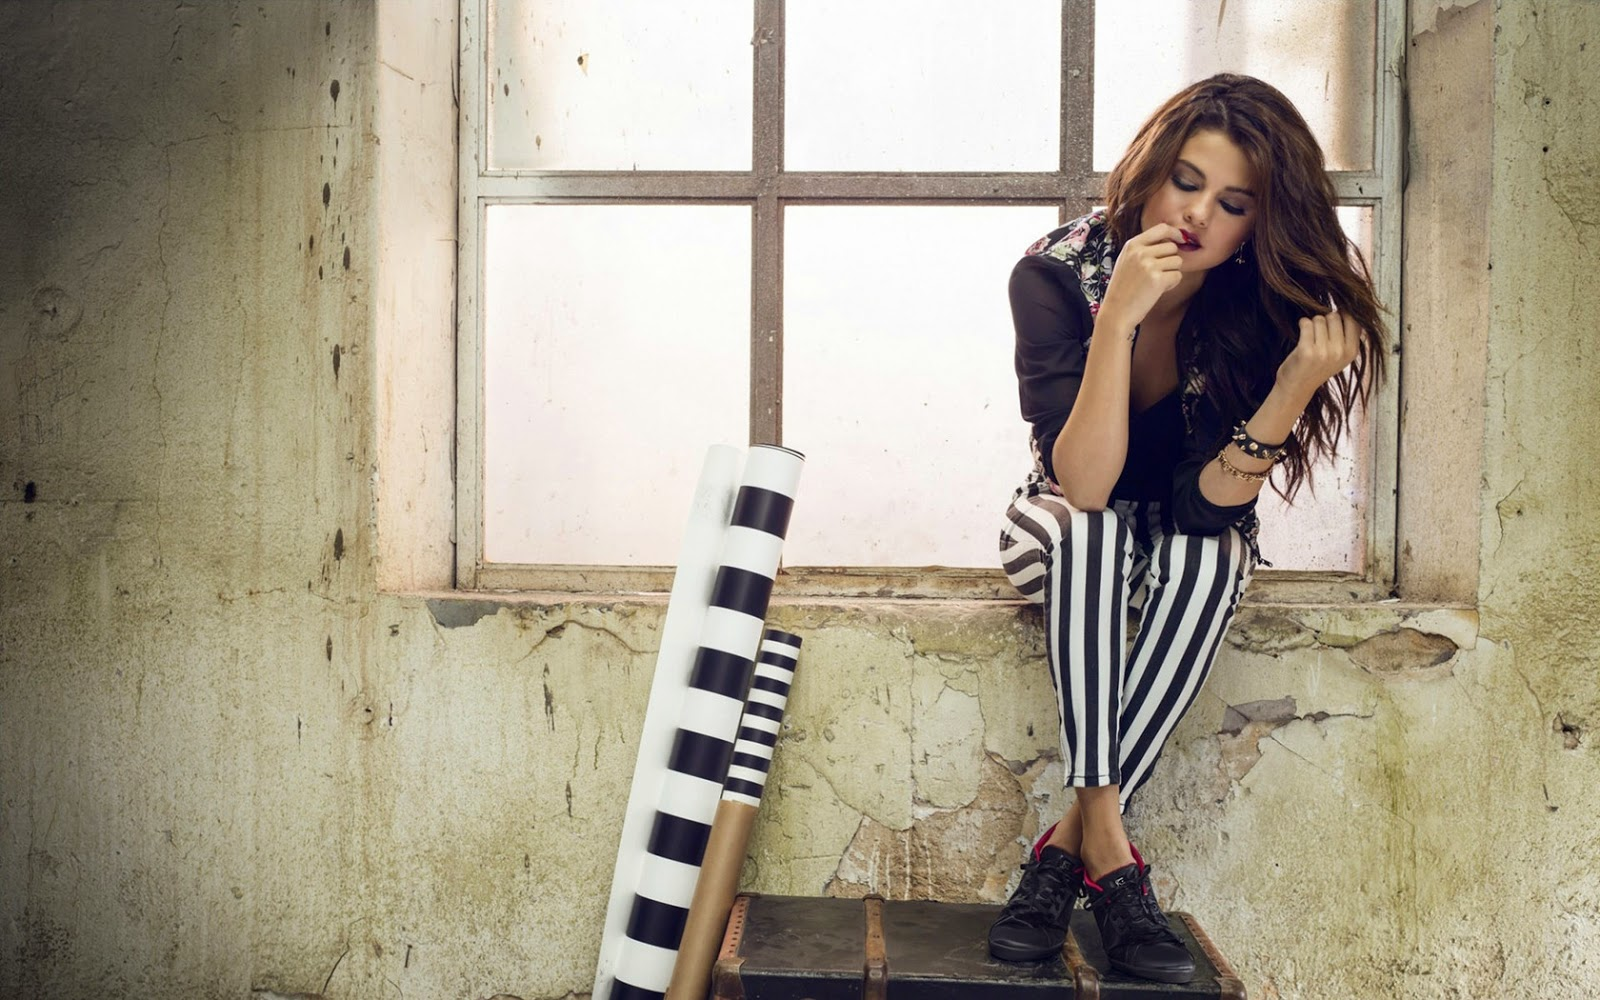 Girls Wallpapers 2015: Girls Wallpaper 2015: Selena Gomez Wallpapers For Facebook